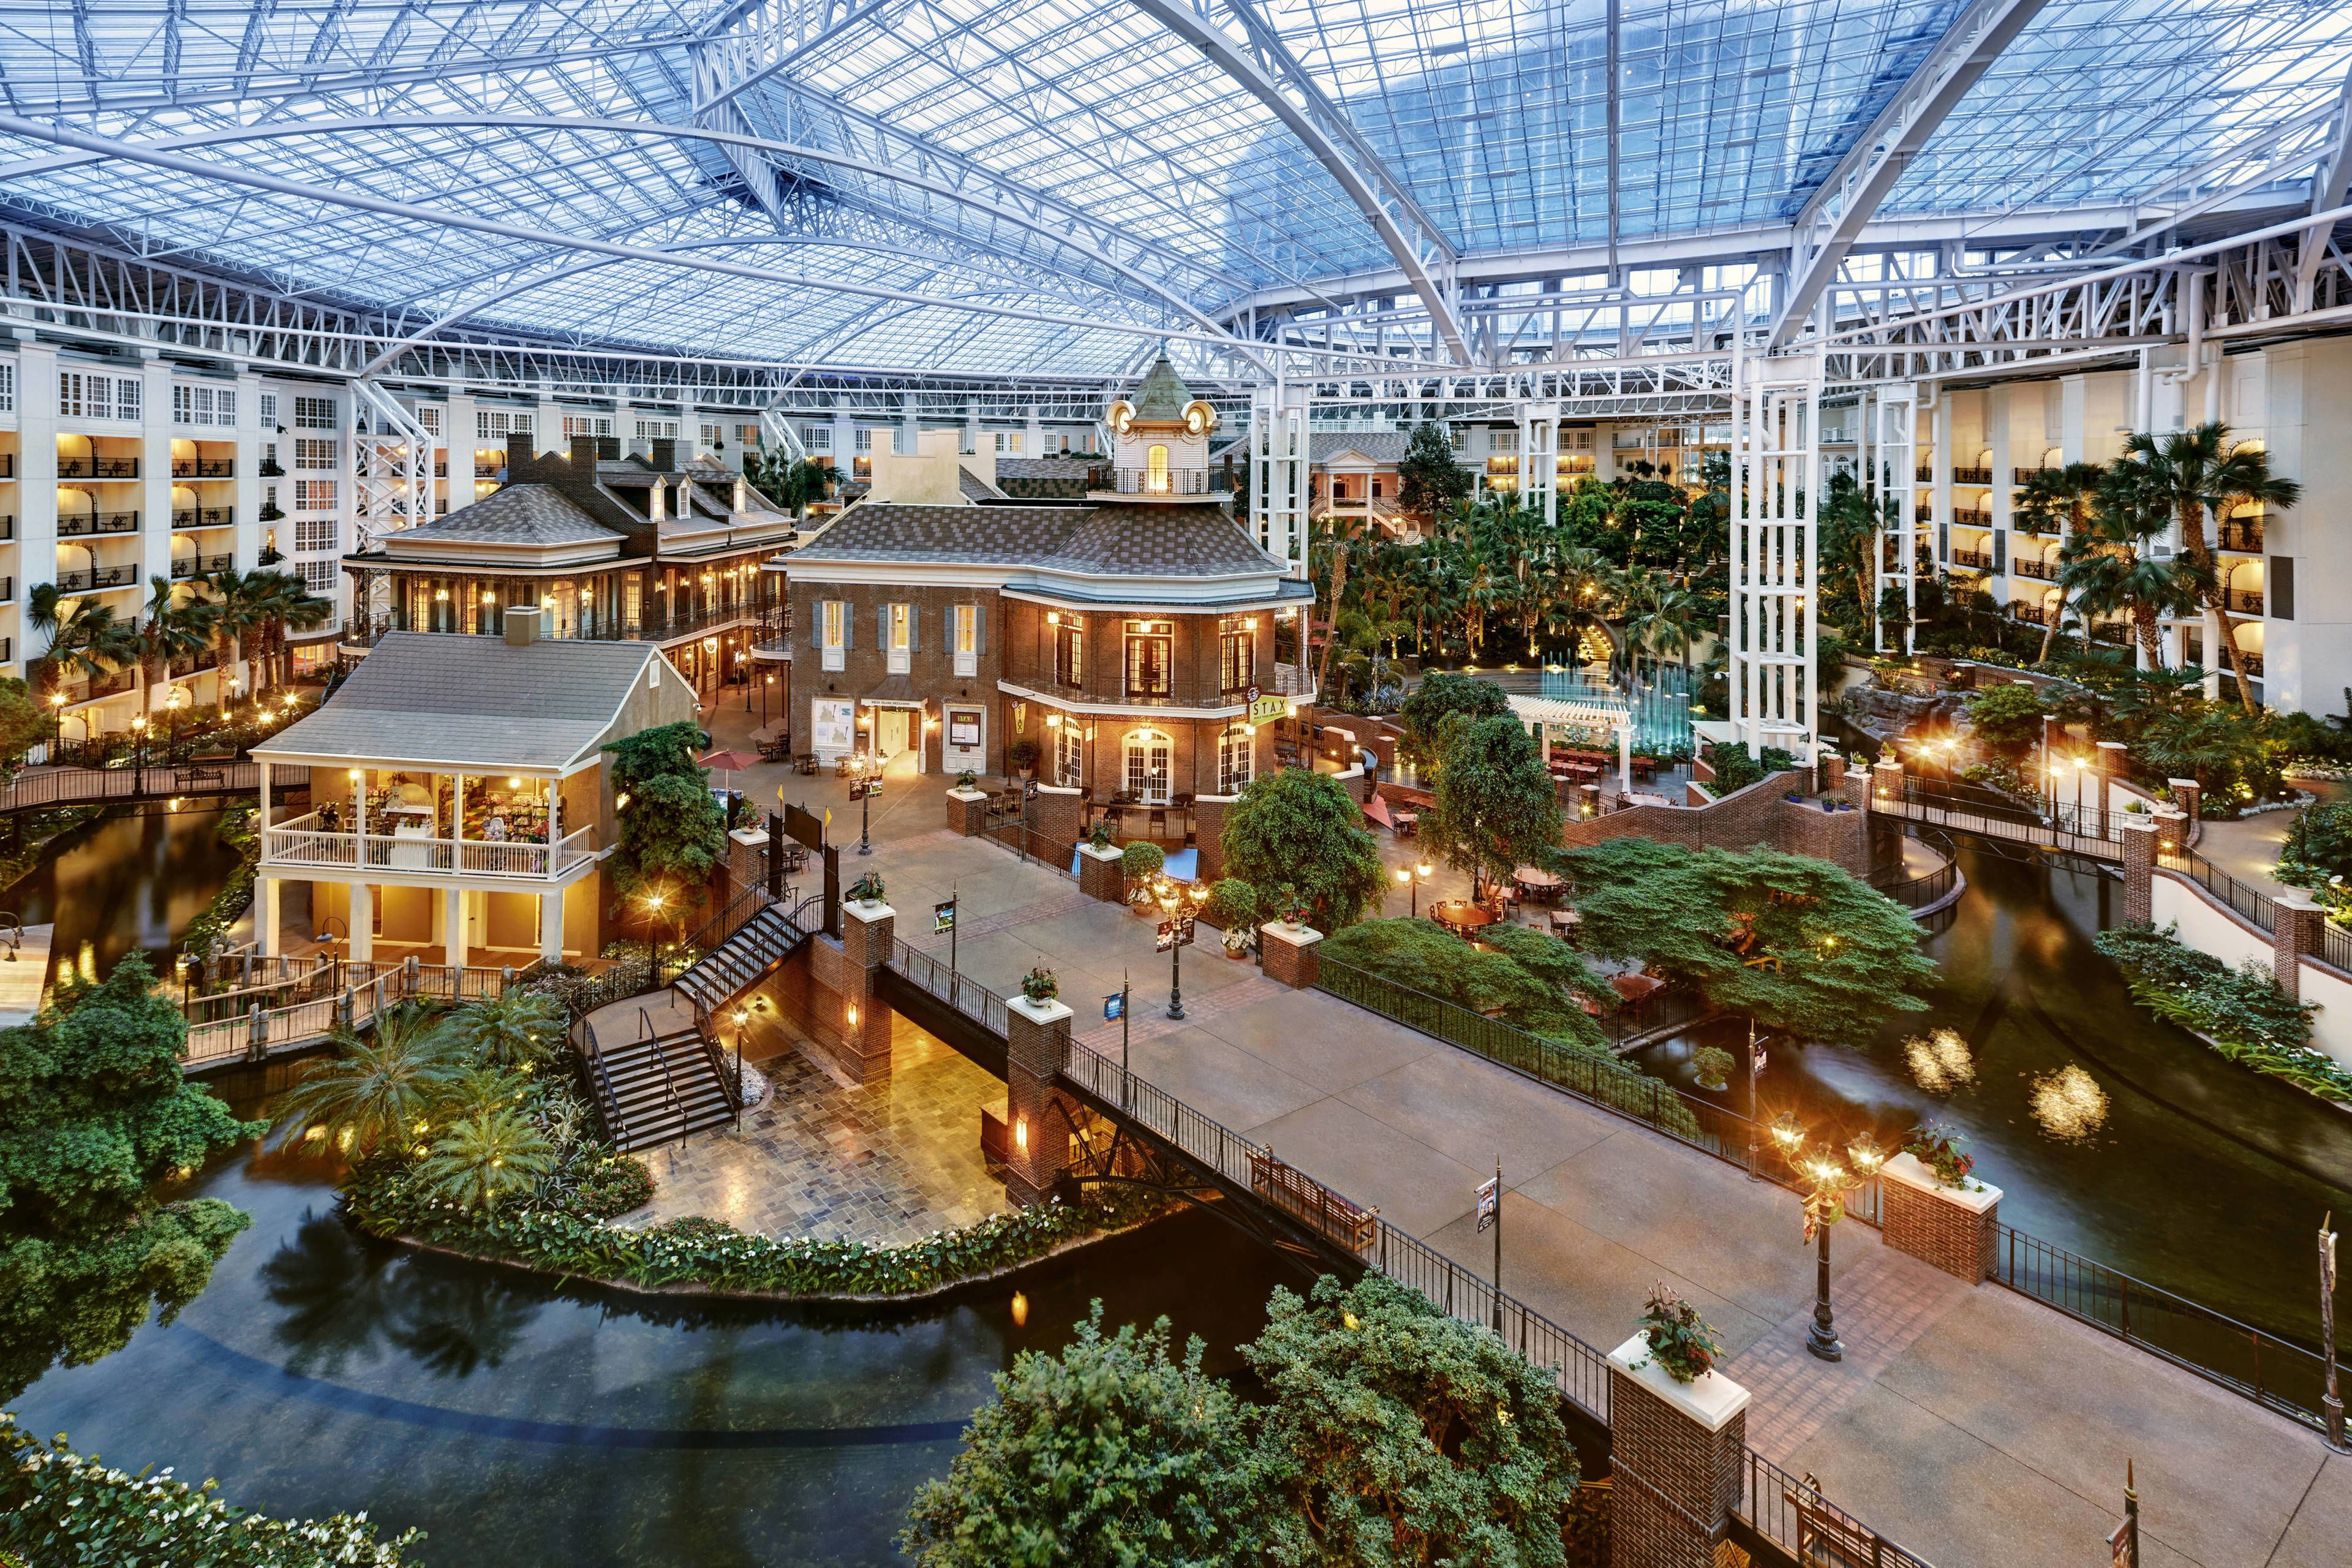 Courtesy of Gaylord Opryland Resort and Convention Center / Expedia